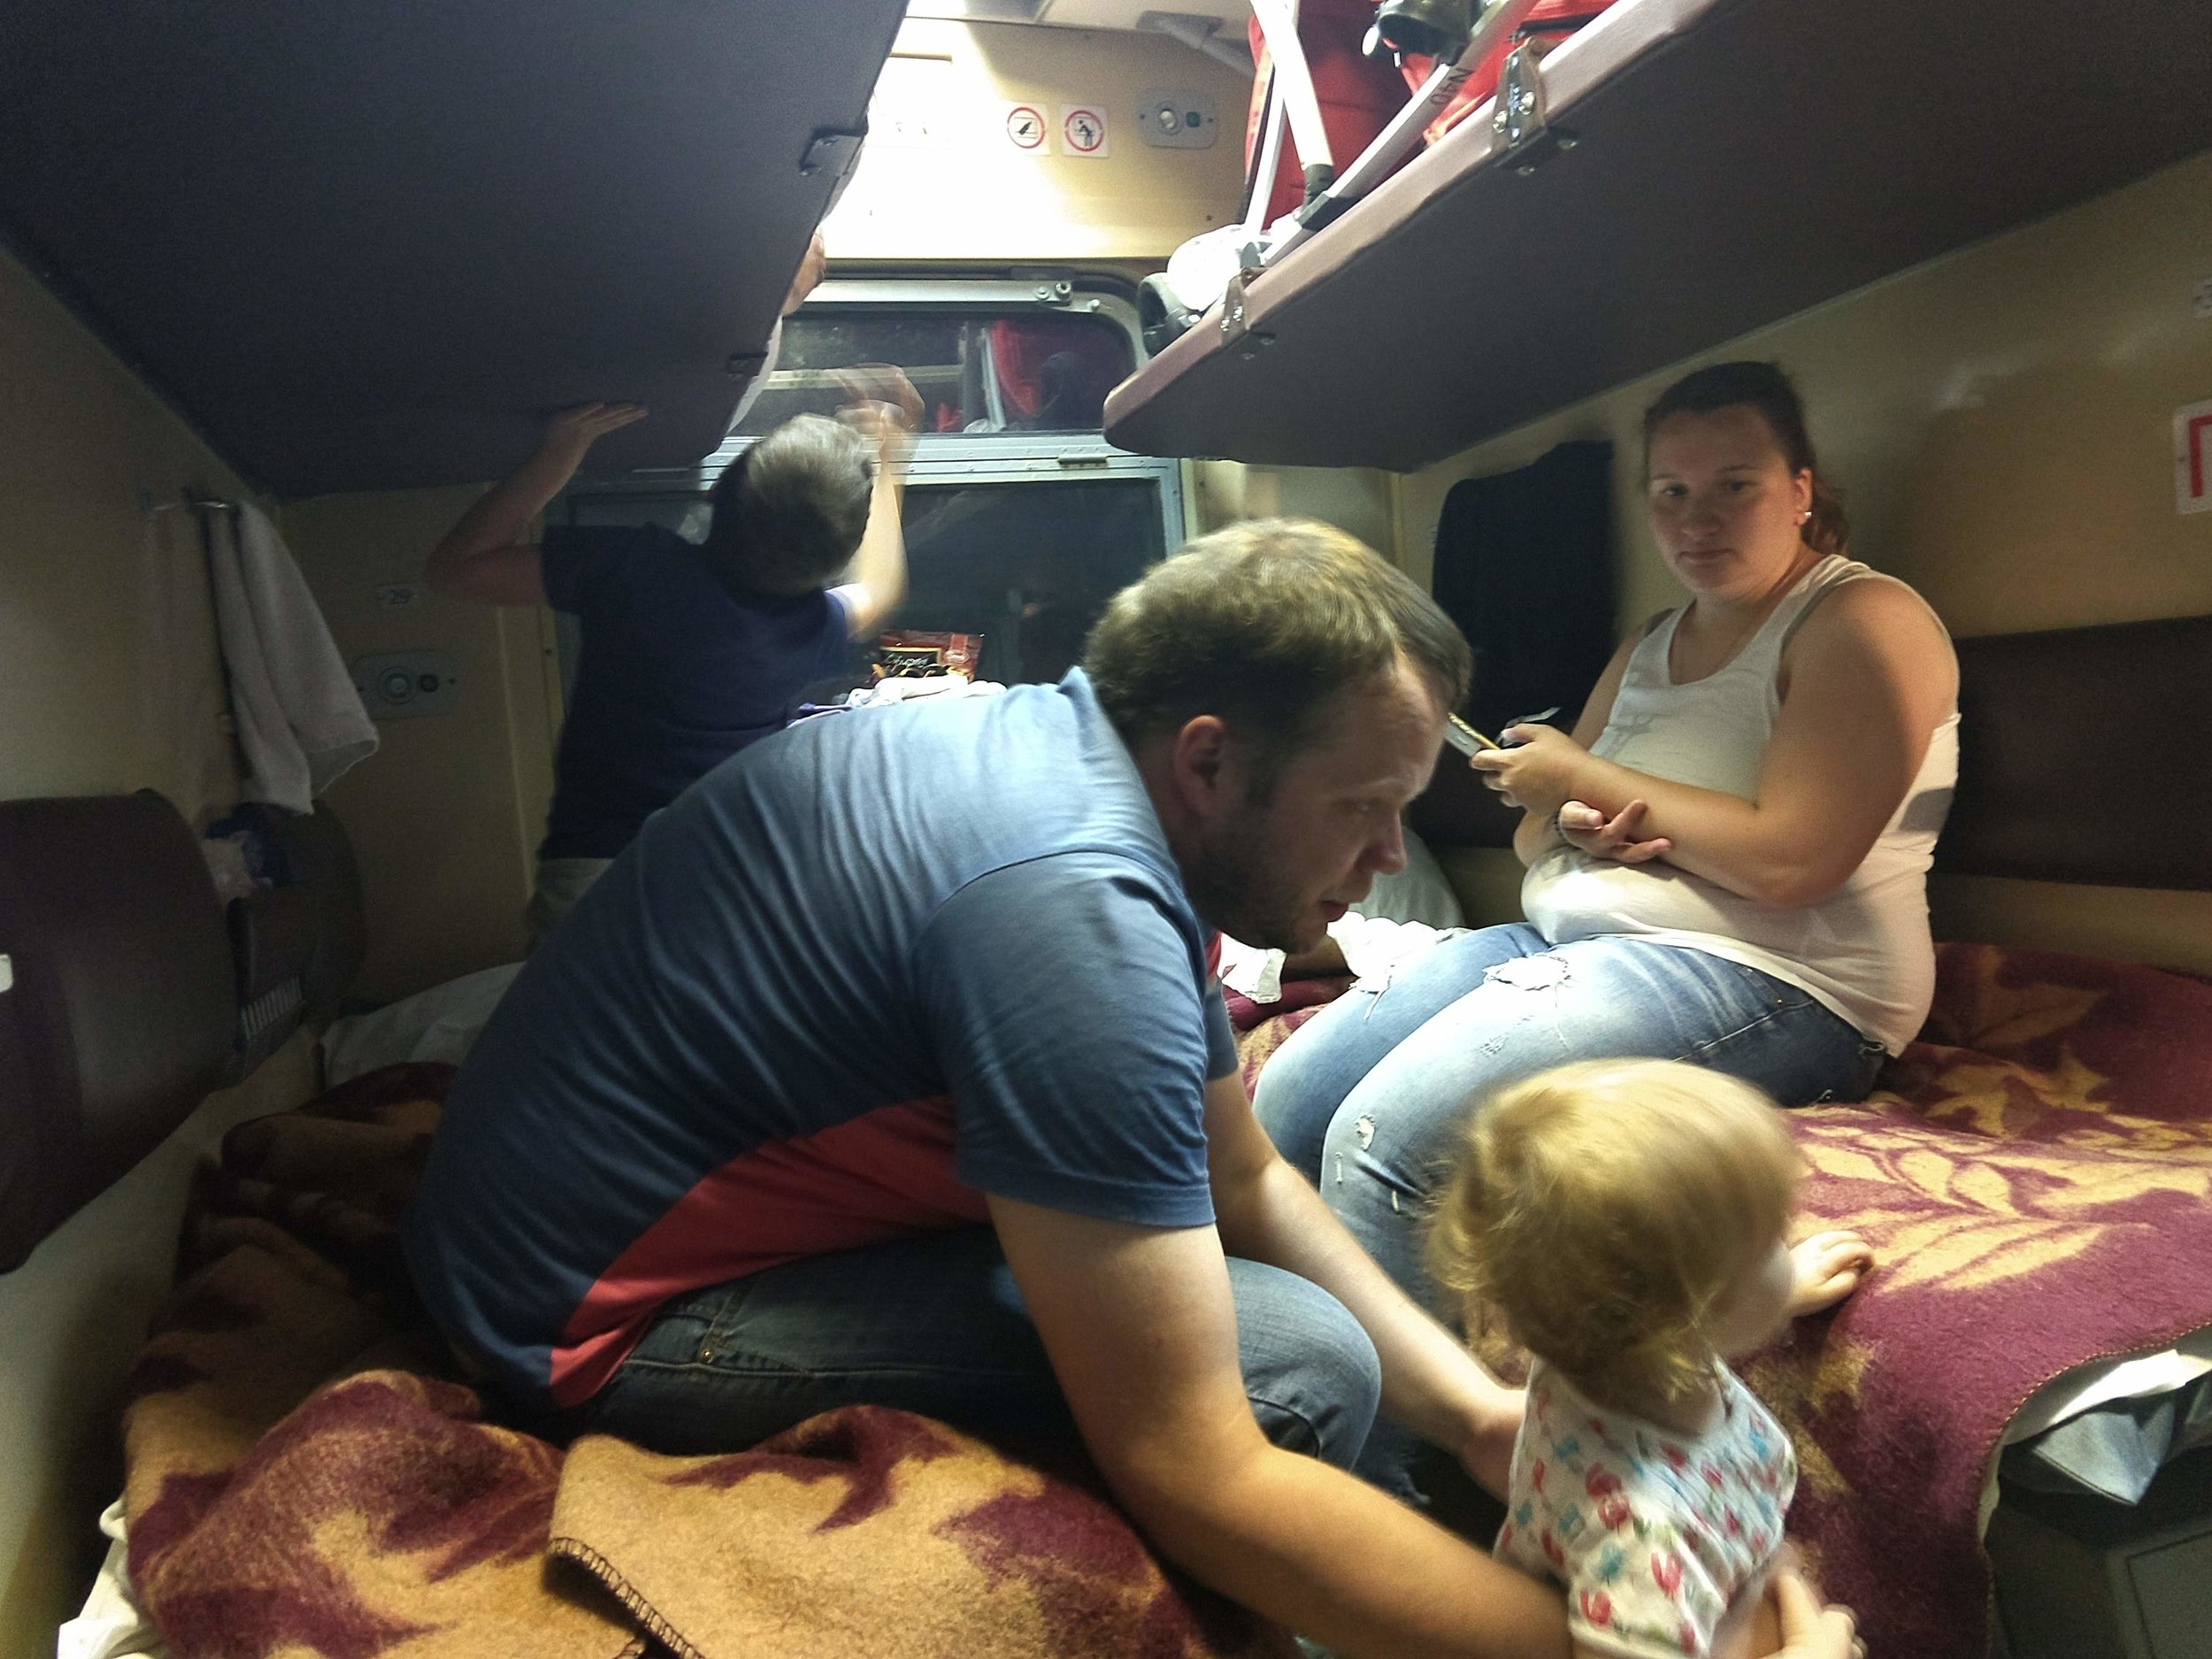 A family settles in for the night.